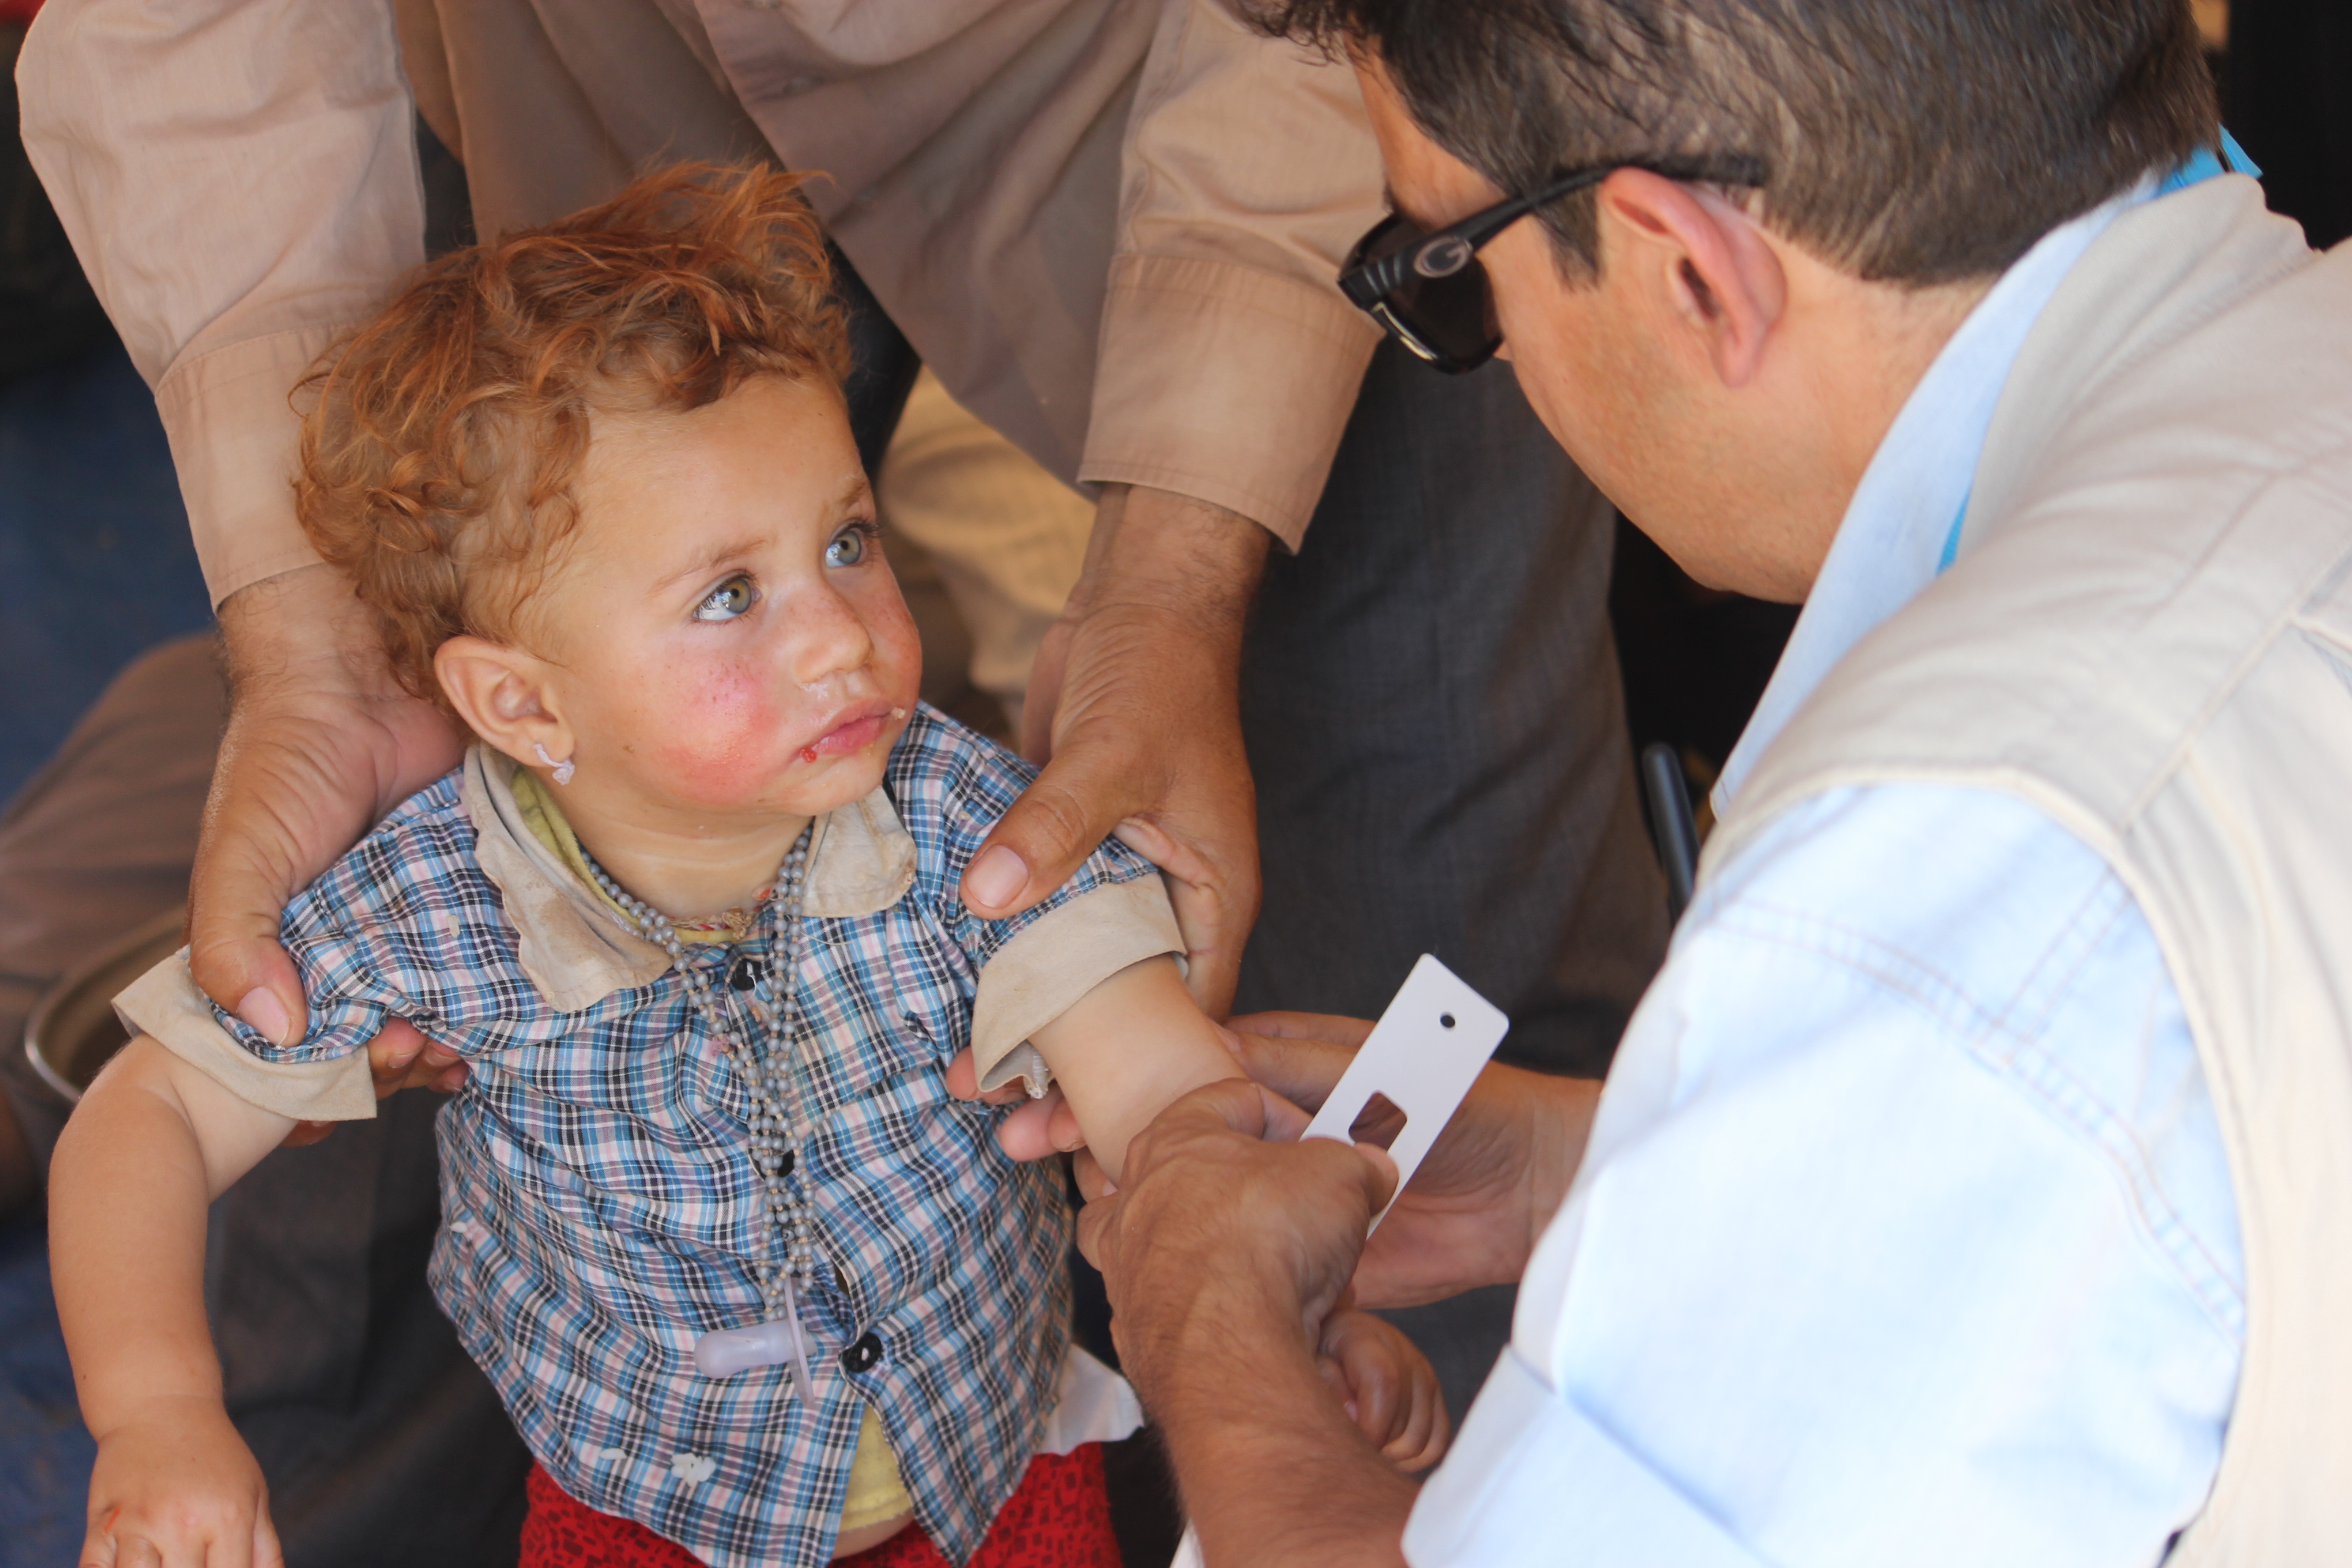 A UNICEF health worker at Nawrouz refugee camp in north-eastern Syria measures the arm of a young Yazidi child as part of a nutrition assessment. © UNICEF Syria/2014/Razan Rashidi